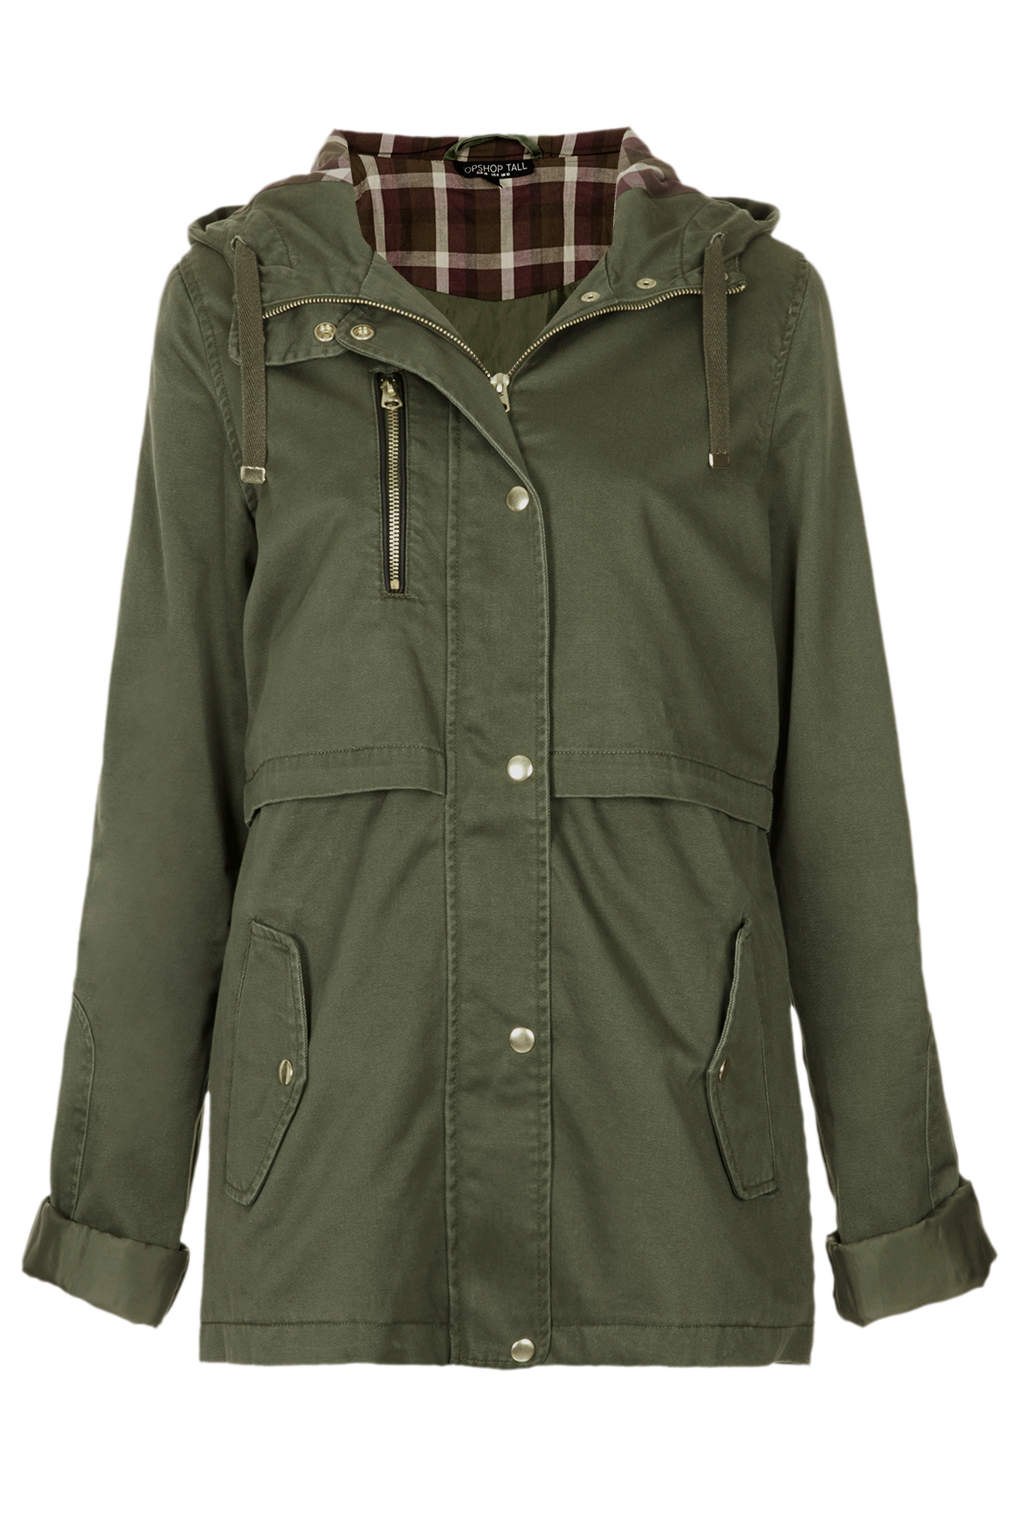 Topshop Hooded Lightweight Jacket in Green | Lyst